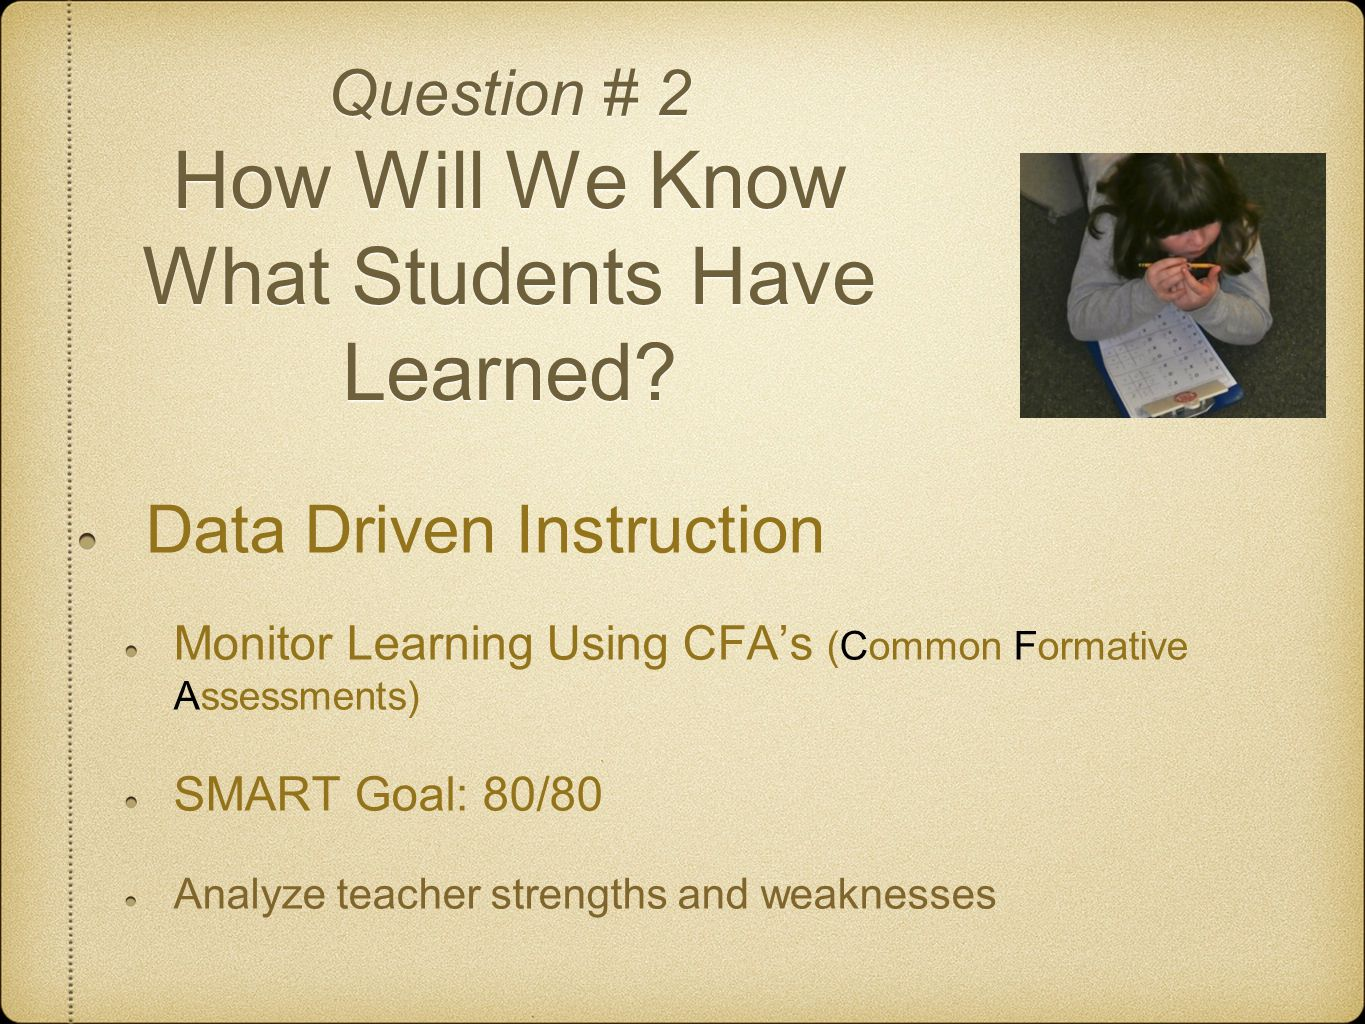 Question # 2 How Will We Know What Students Have Learned.